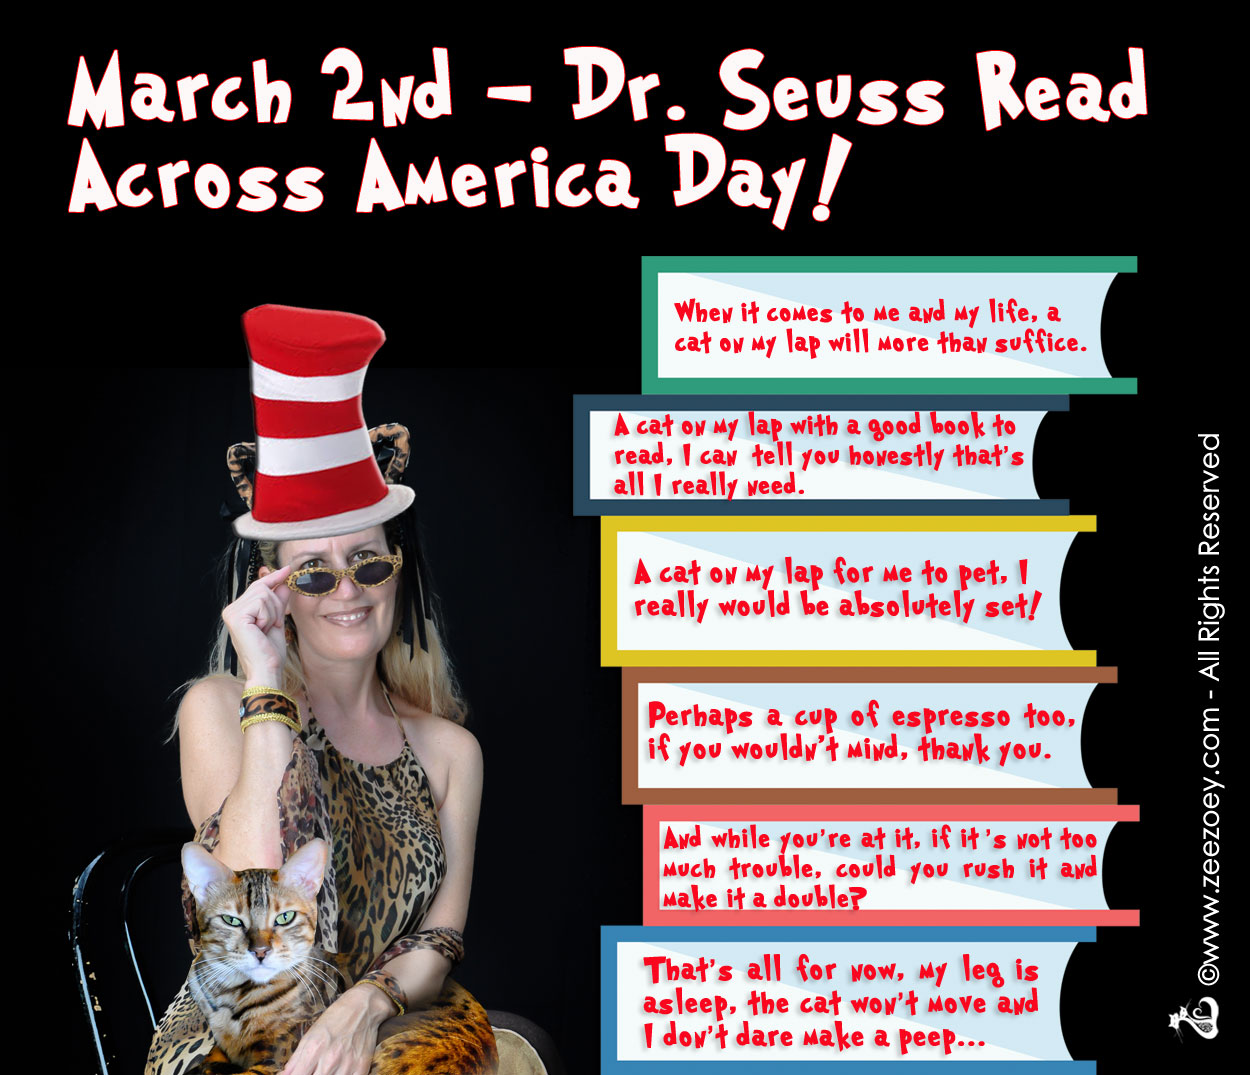 Dr. Seuss Read Across America Day is a great way to teach children about the joys of reading.